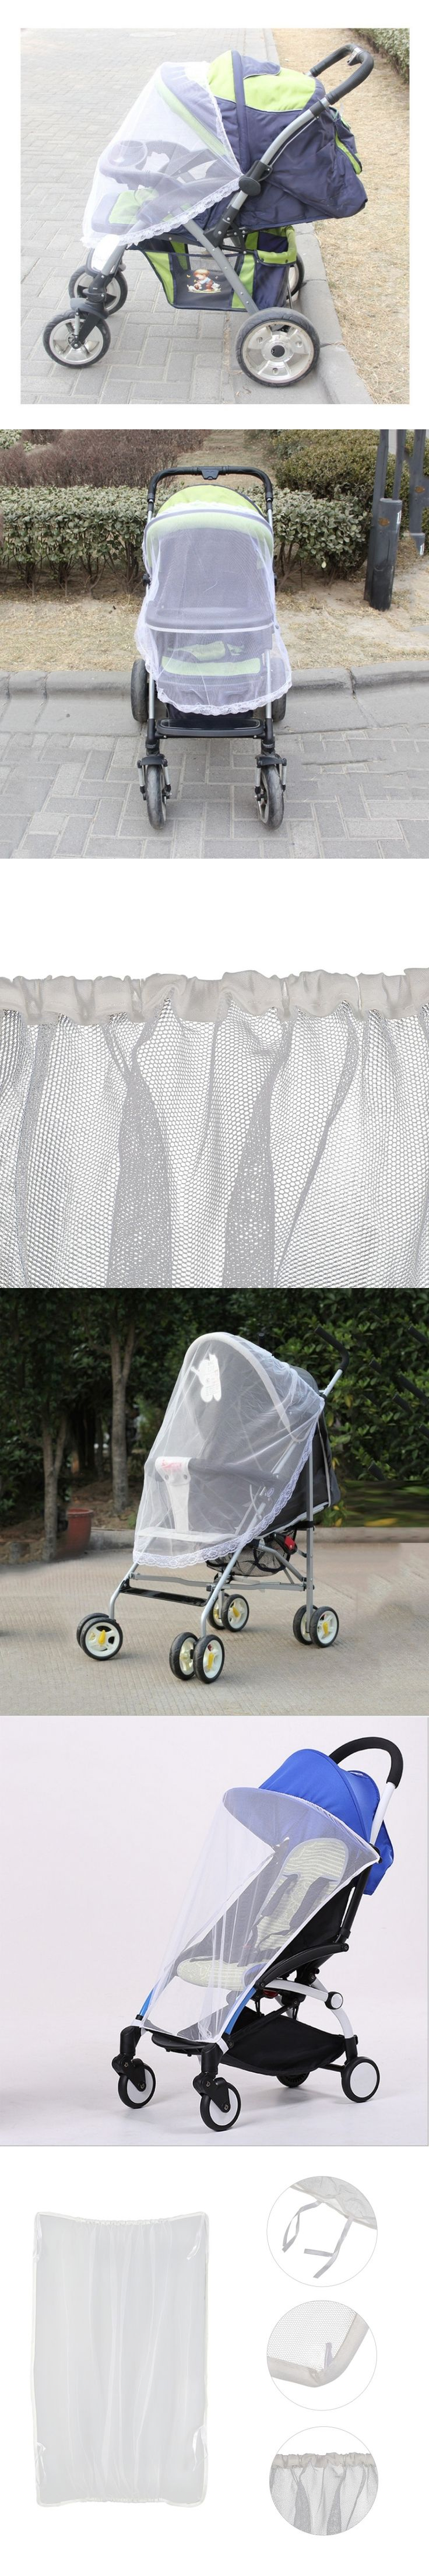 Summer Newborn High Density Anti-Mosquito Nets Twin Baby Stroller Children's Stroller Baby Car Trolley Special Nets